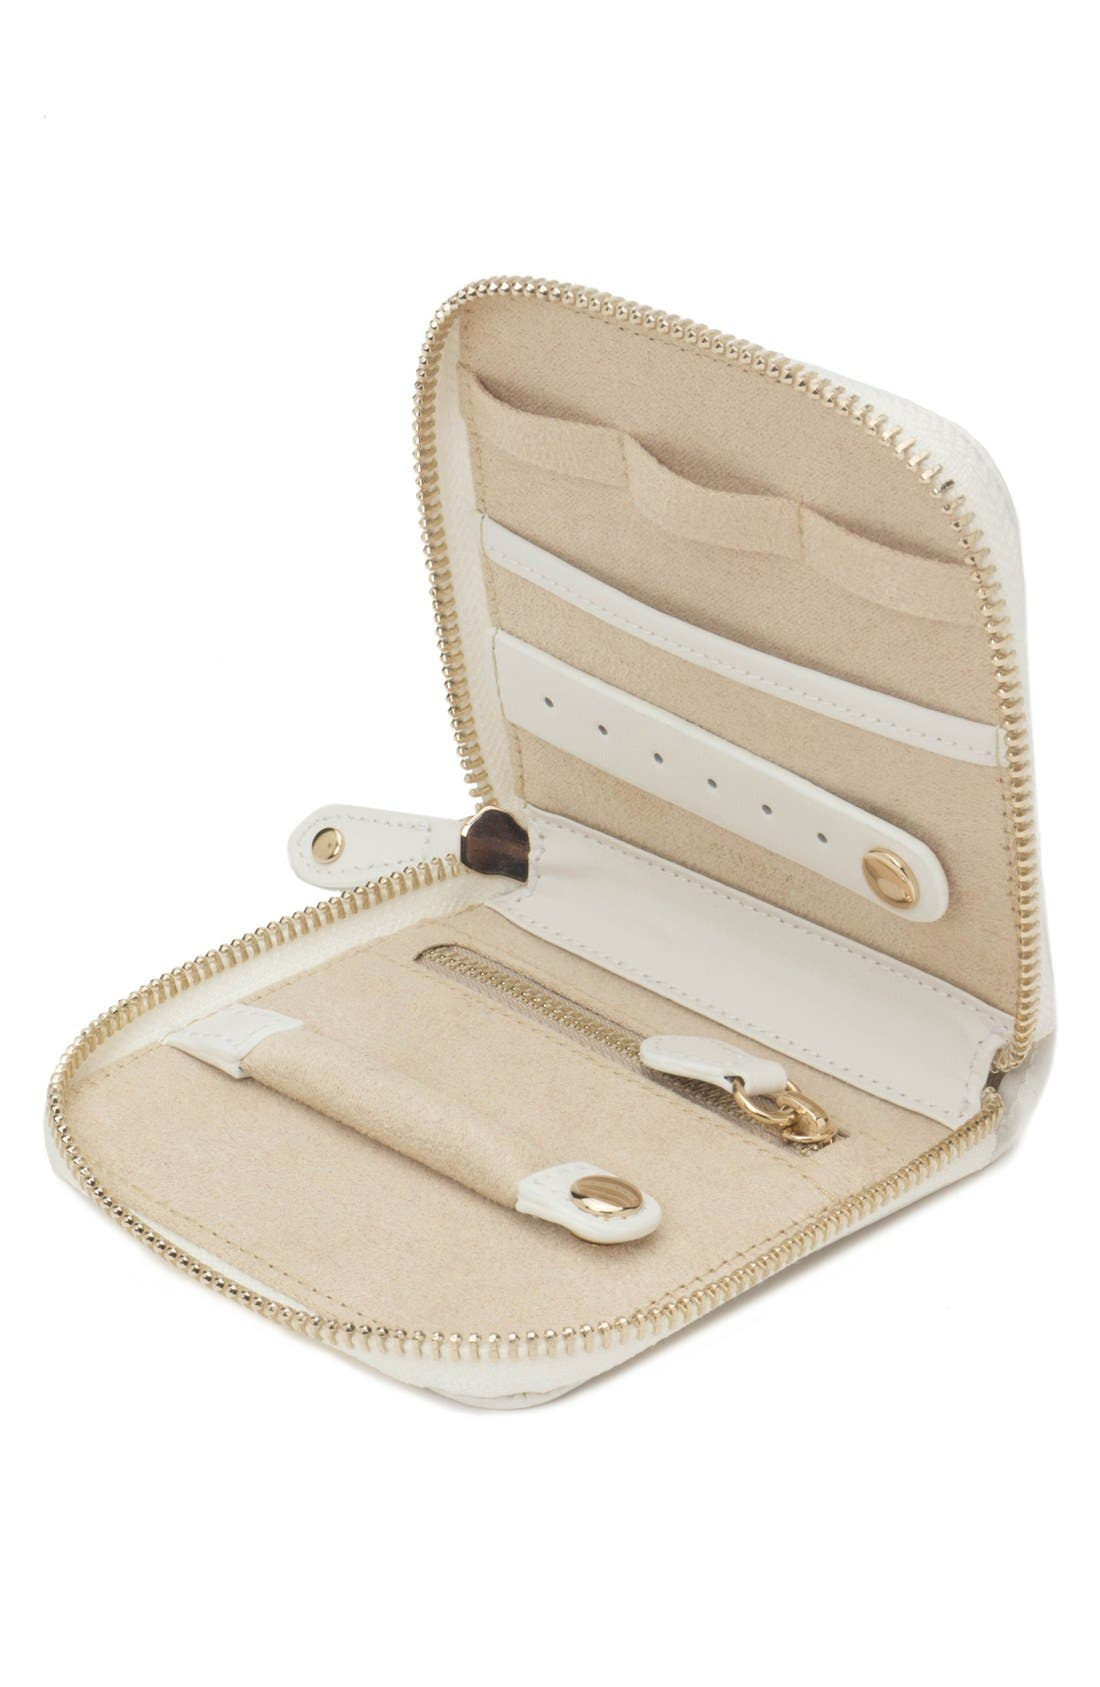 'Marrakesh' Travel Jewelry Case,                             Alternate thumbnail 3, color,                             901